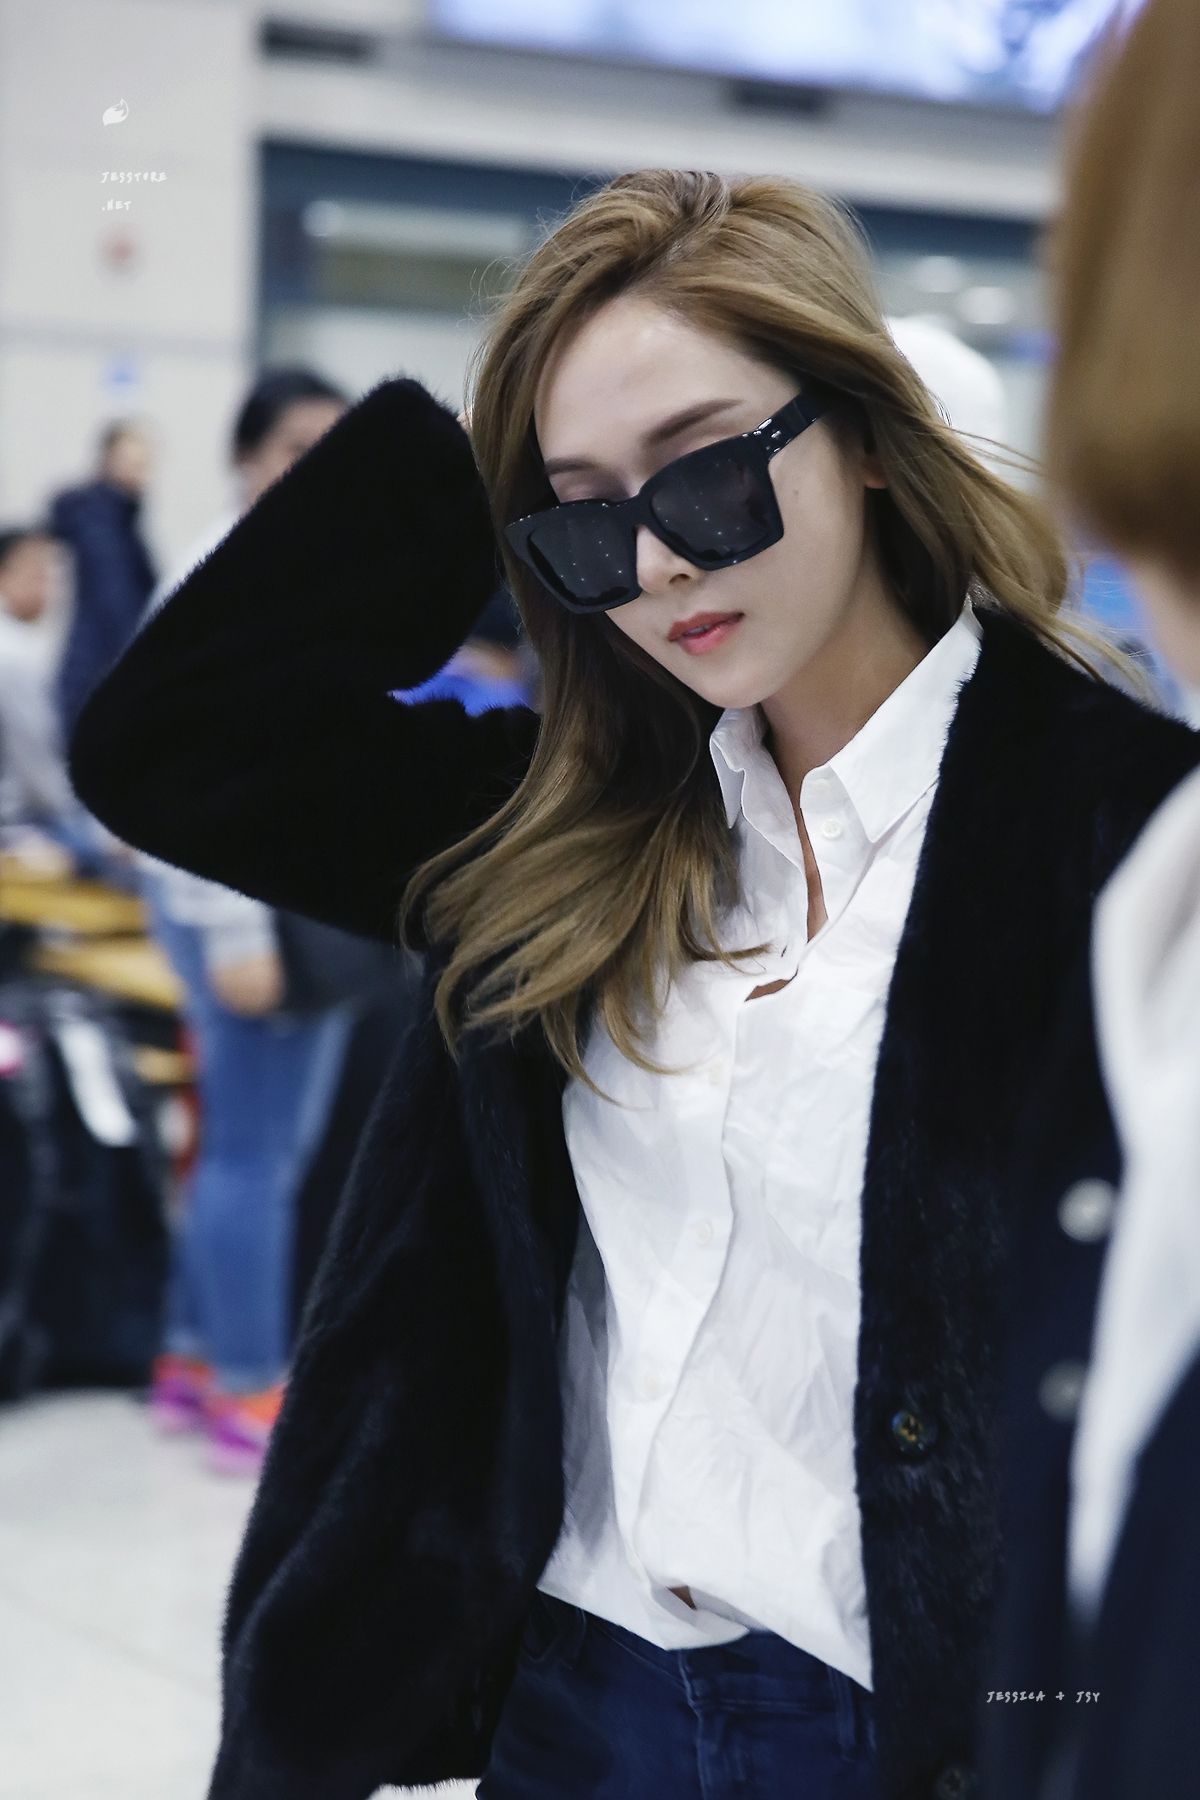 Jessica Jung Airport Fashion 170215 2017 | SNSD Airport ...